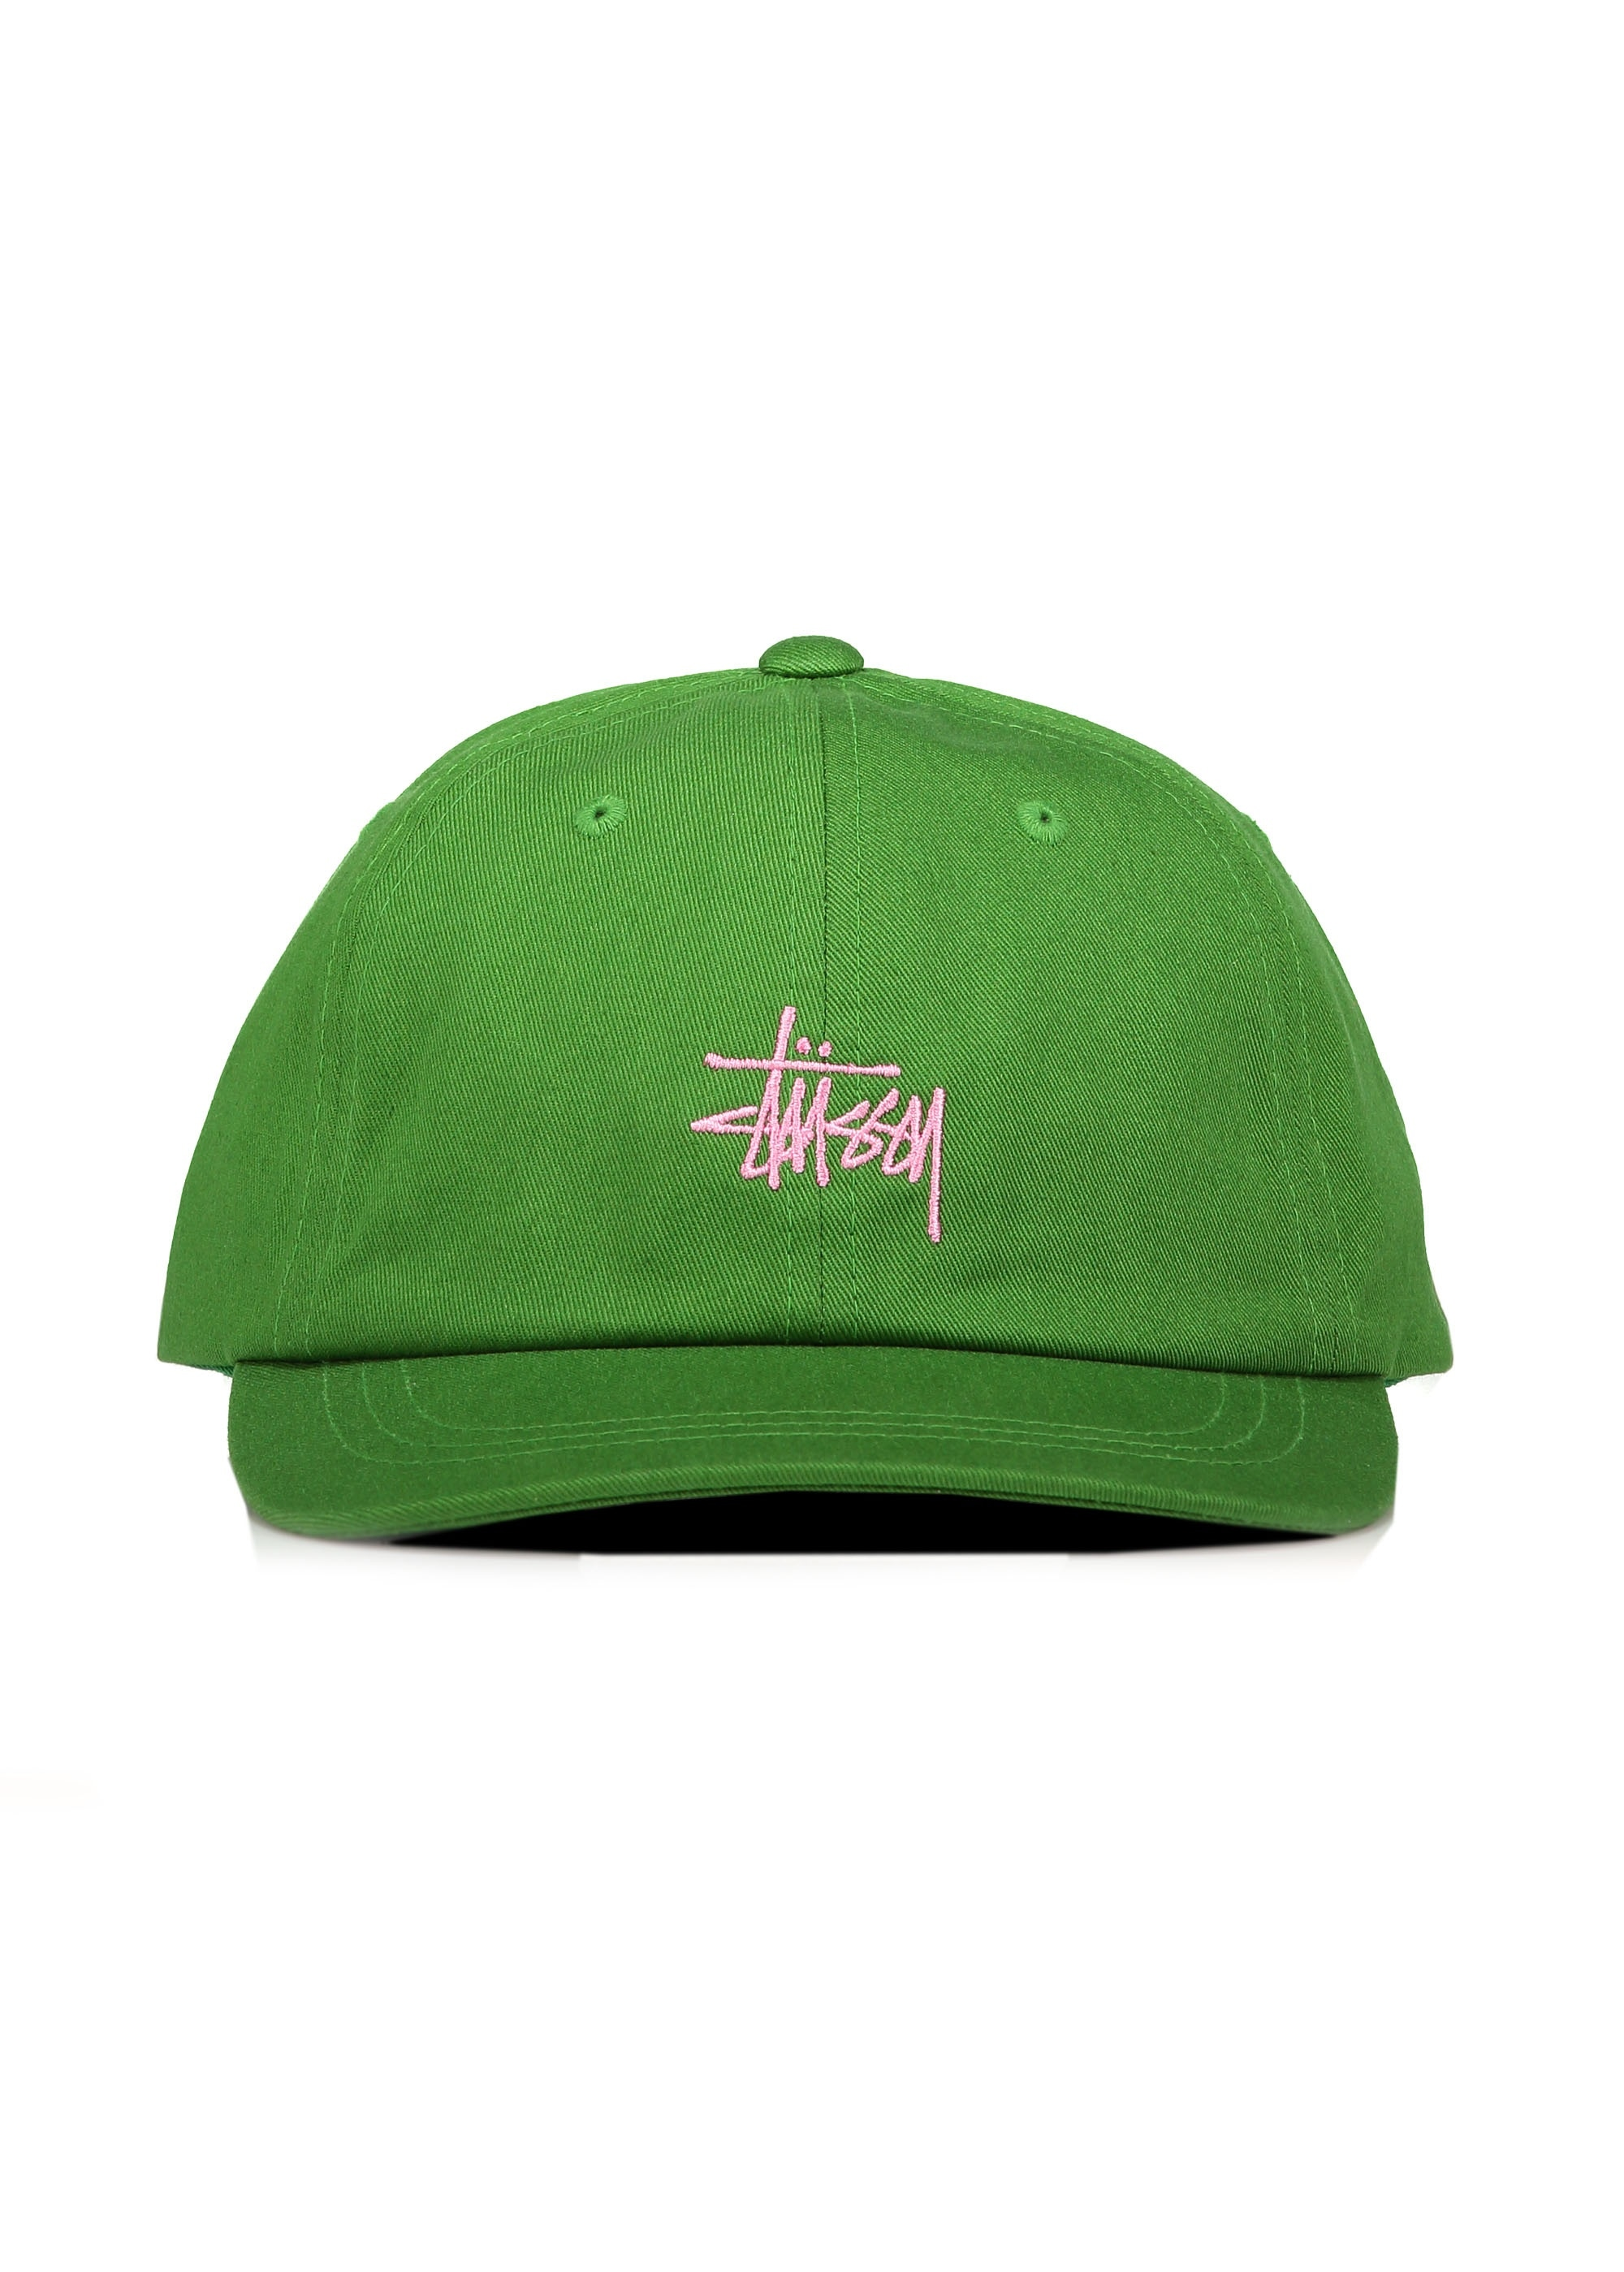 2599bf35641b7 Stussy SP19 Stock Low Pro Cap - Green - Headwear from Triads UK